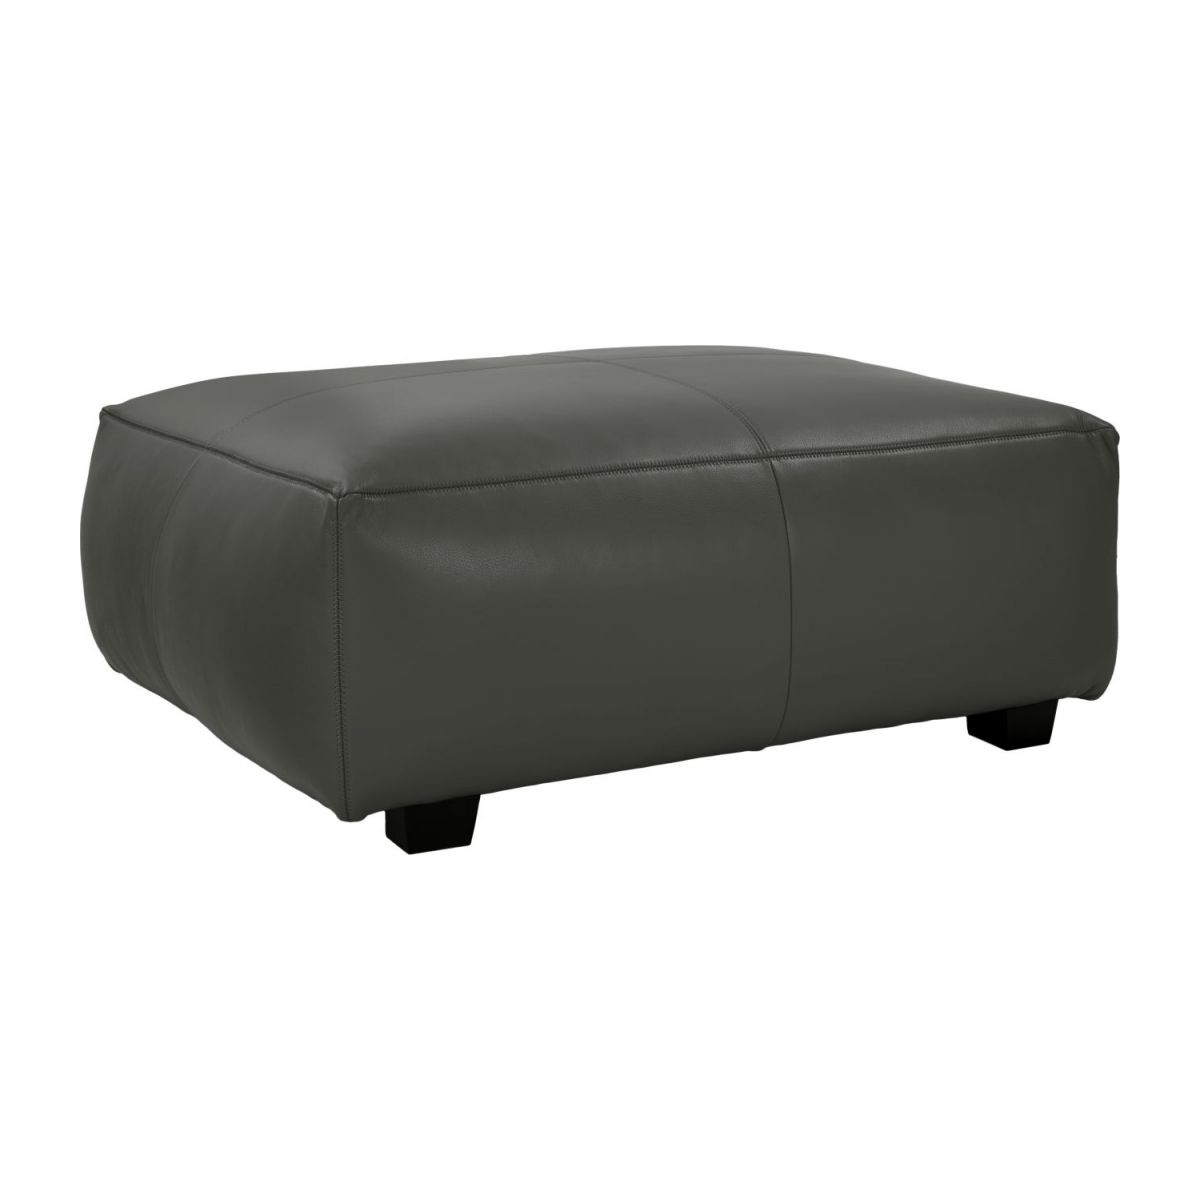 Footstool in Savoy semi-aniline leather, grey  n°1